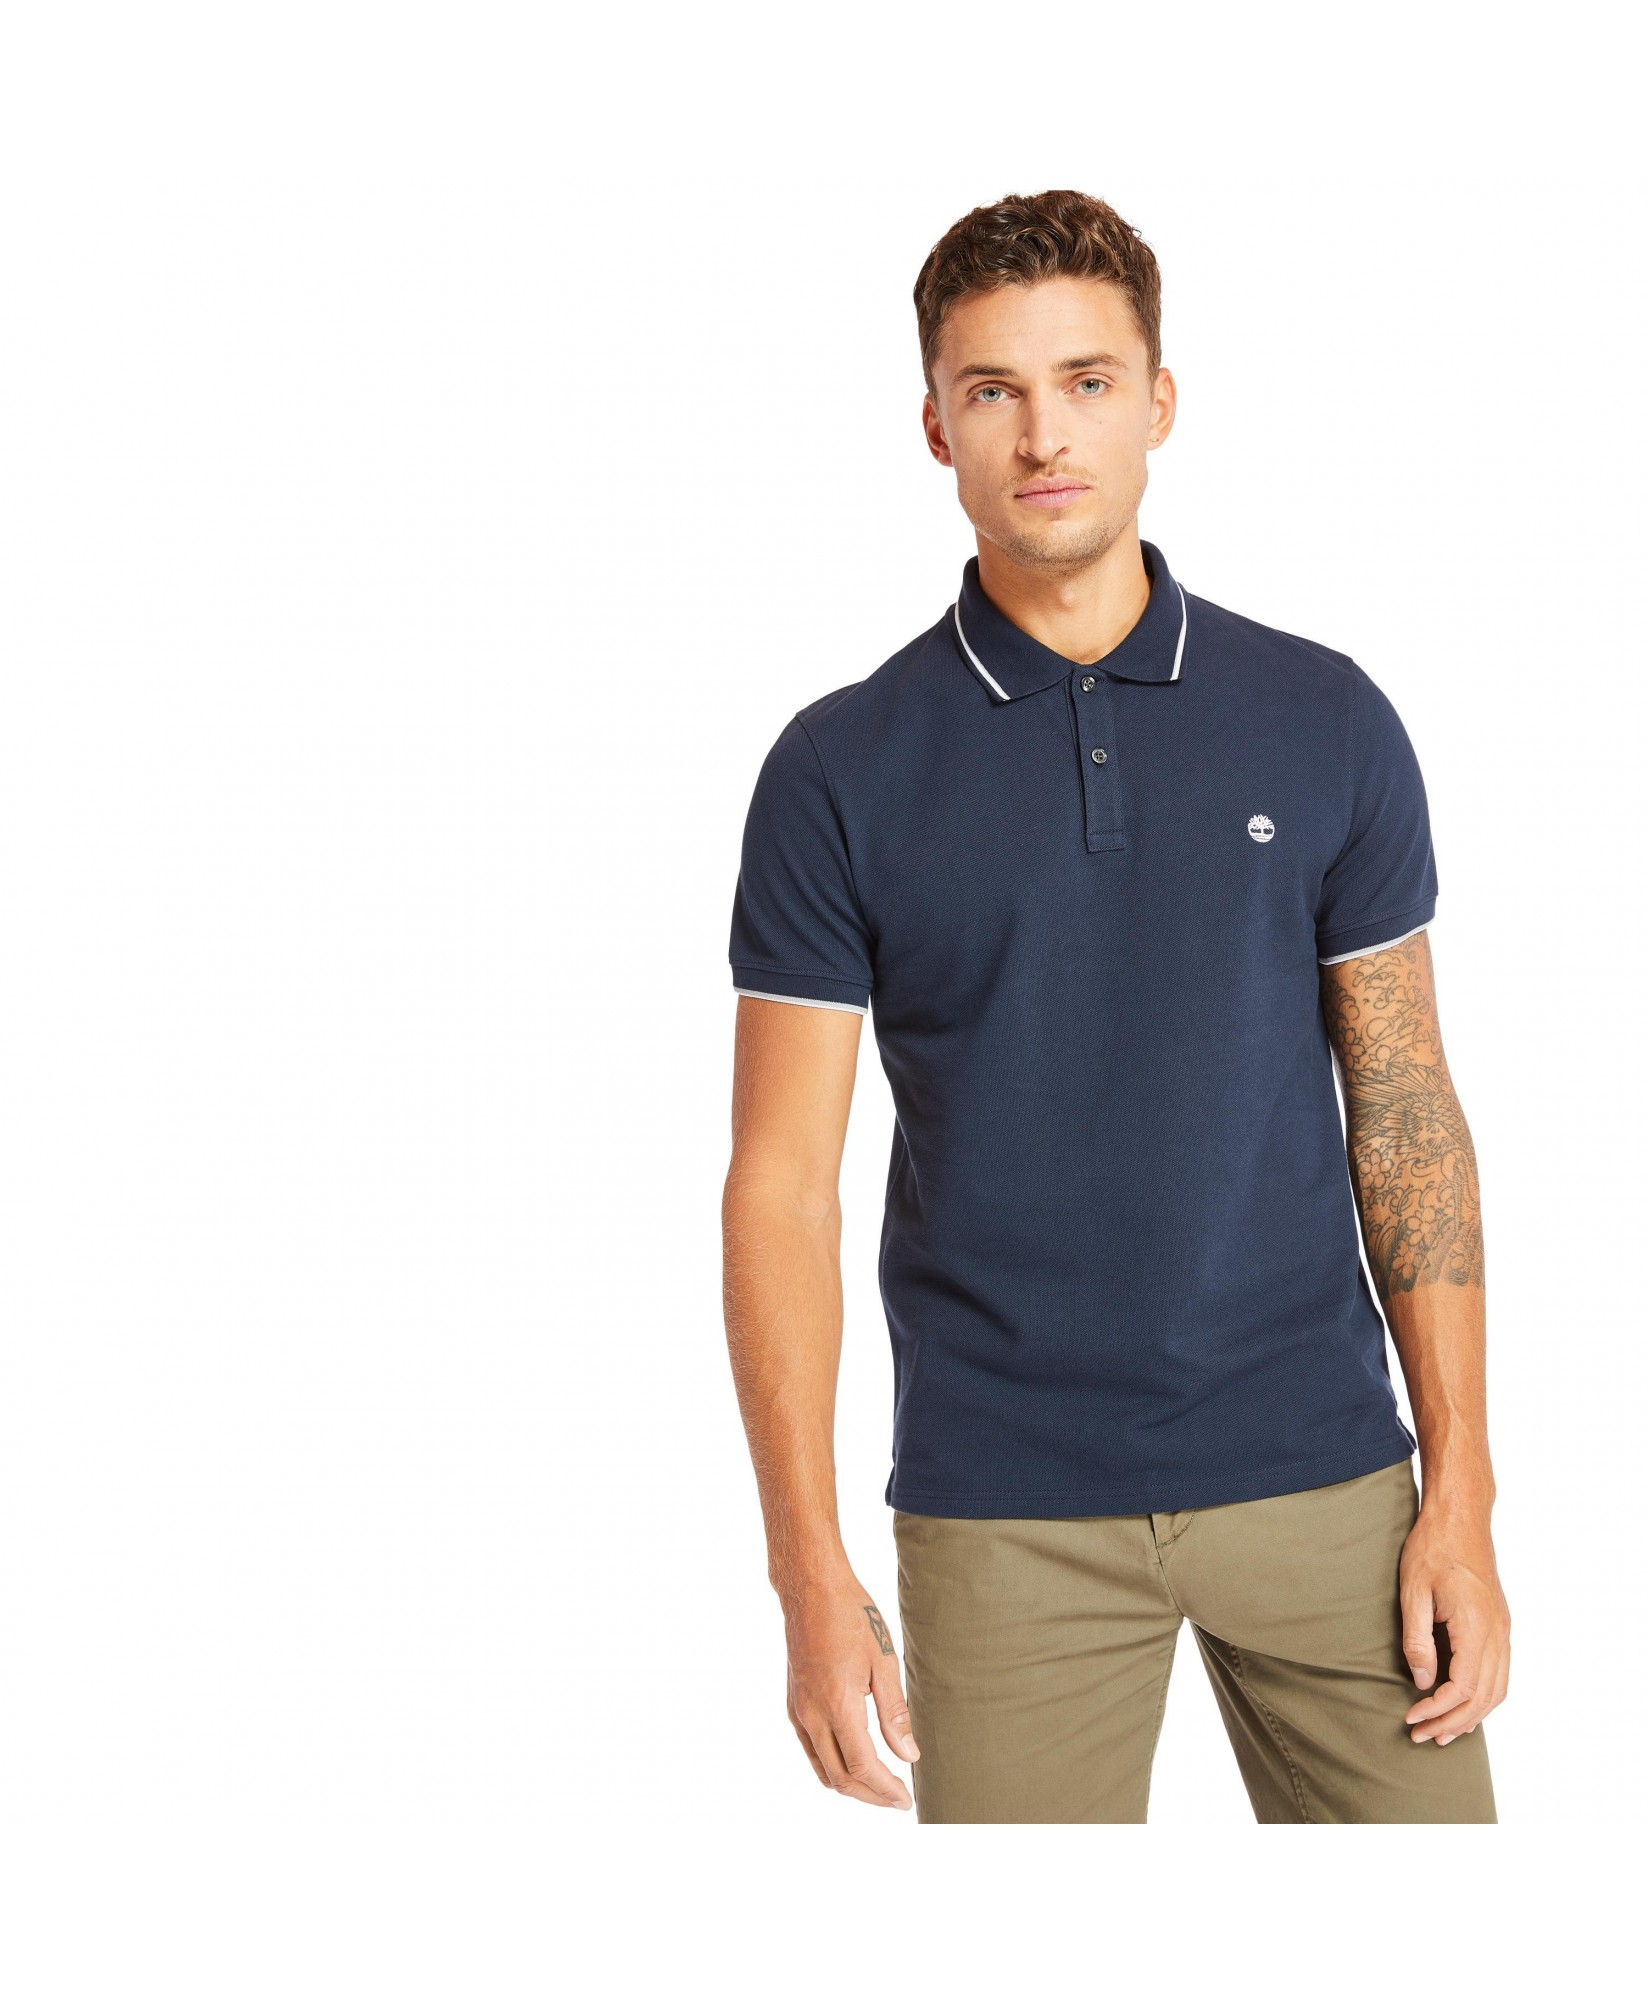 POLO SLIM MILLERS RIVER PIQUE TIPPED POLO SLIM MILLERS RIVER PIQUE TIPPED